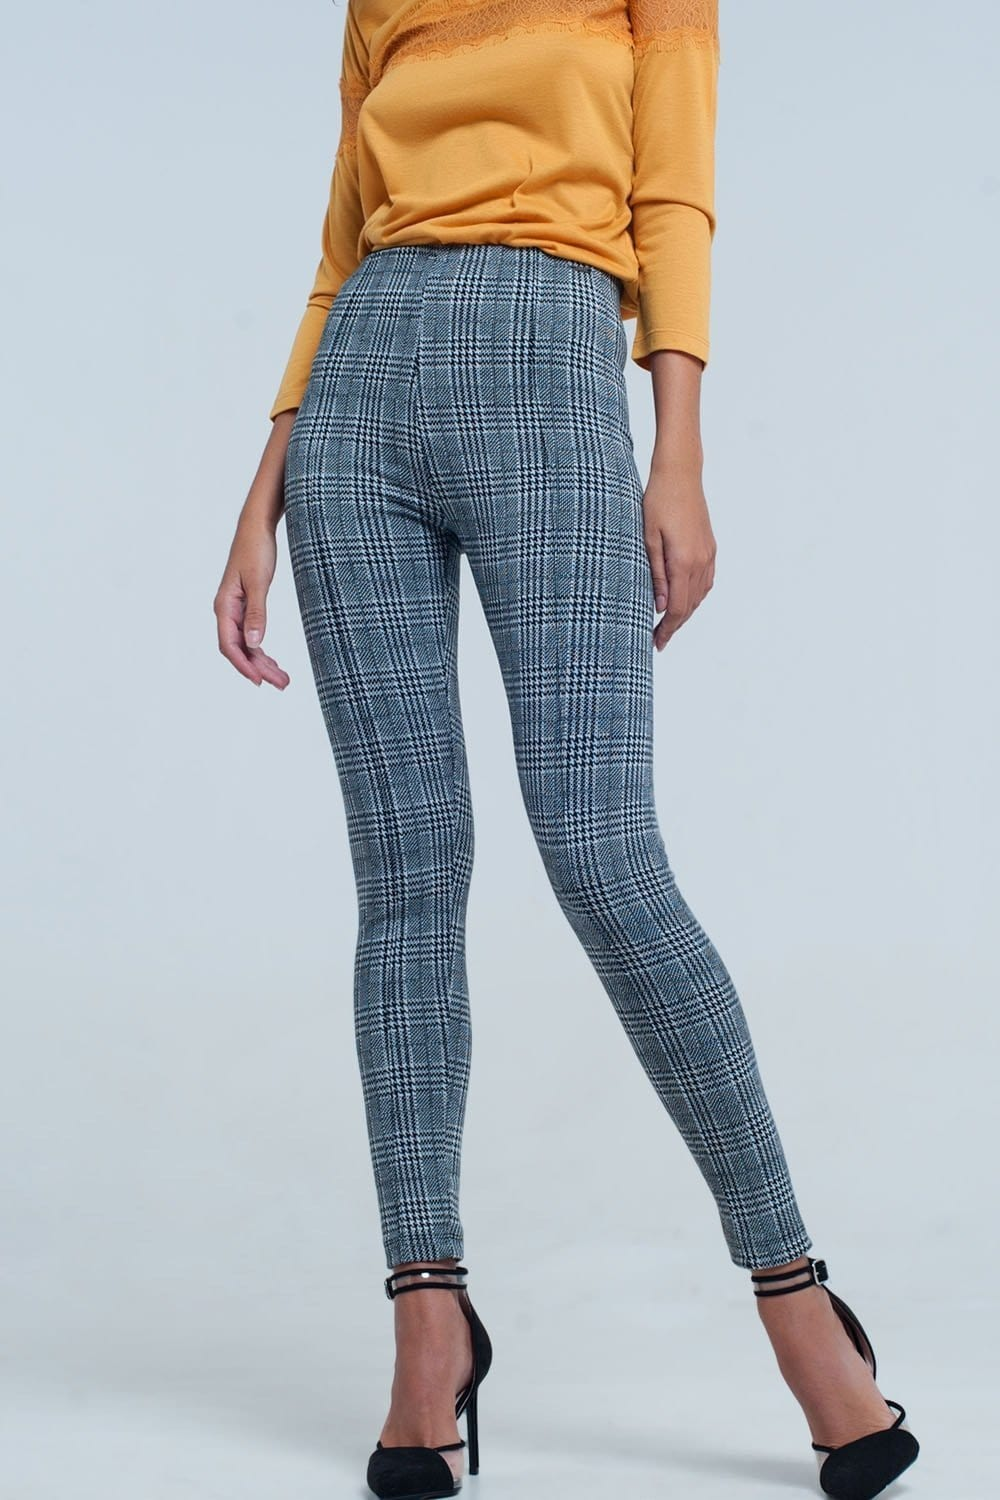 Leggings in Black and Grey Check Print - Himelhoch's